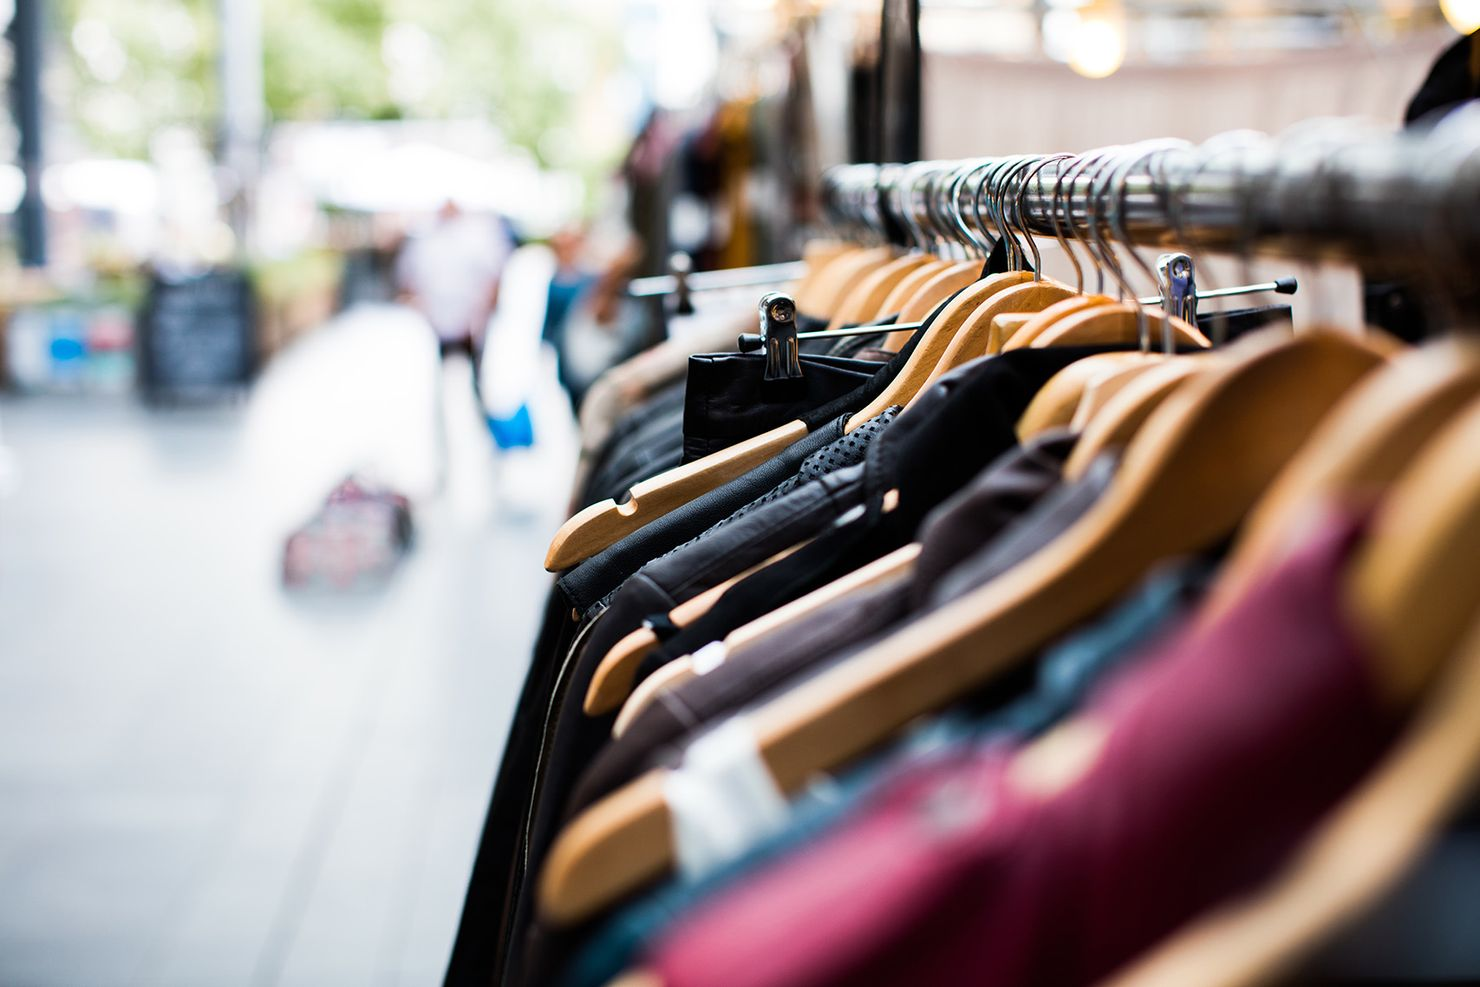 Image 1 for Retail Gets Physical: Why Brands are Turning to Brick-and-Mortar Stores